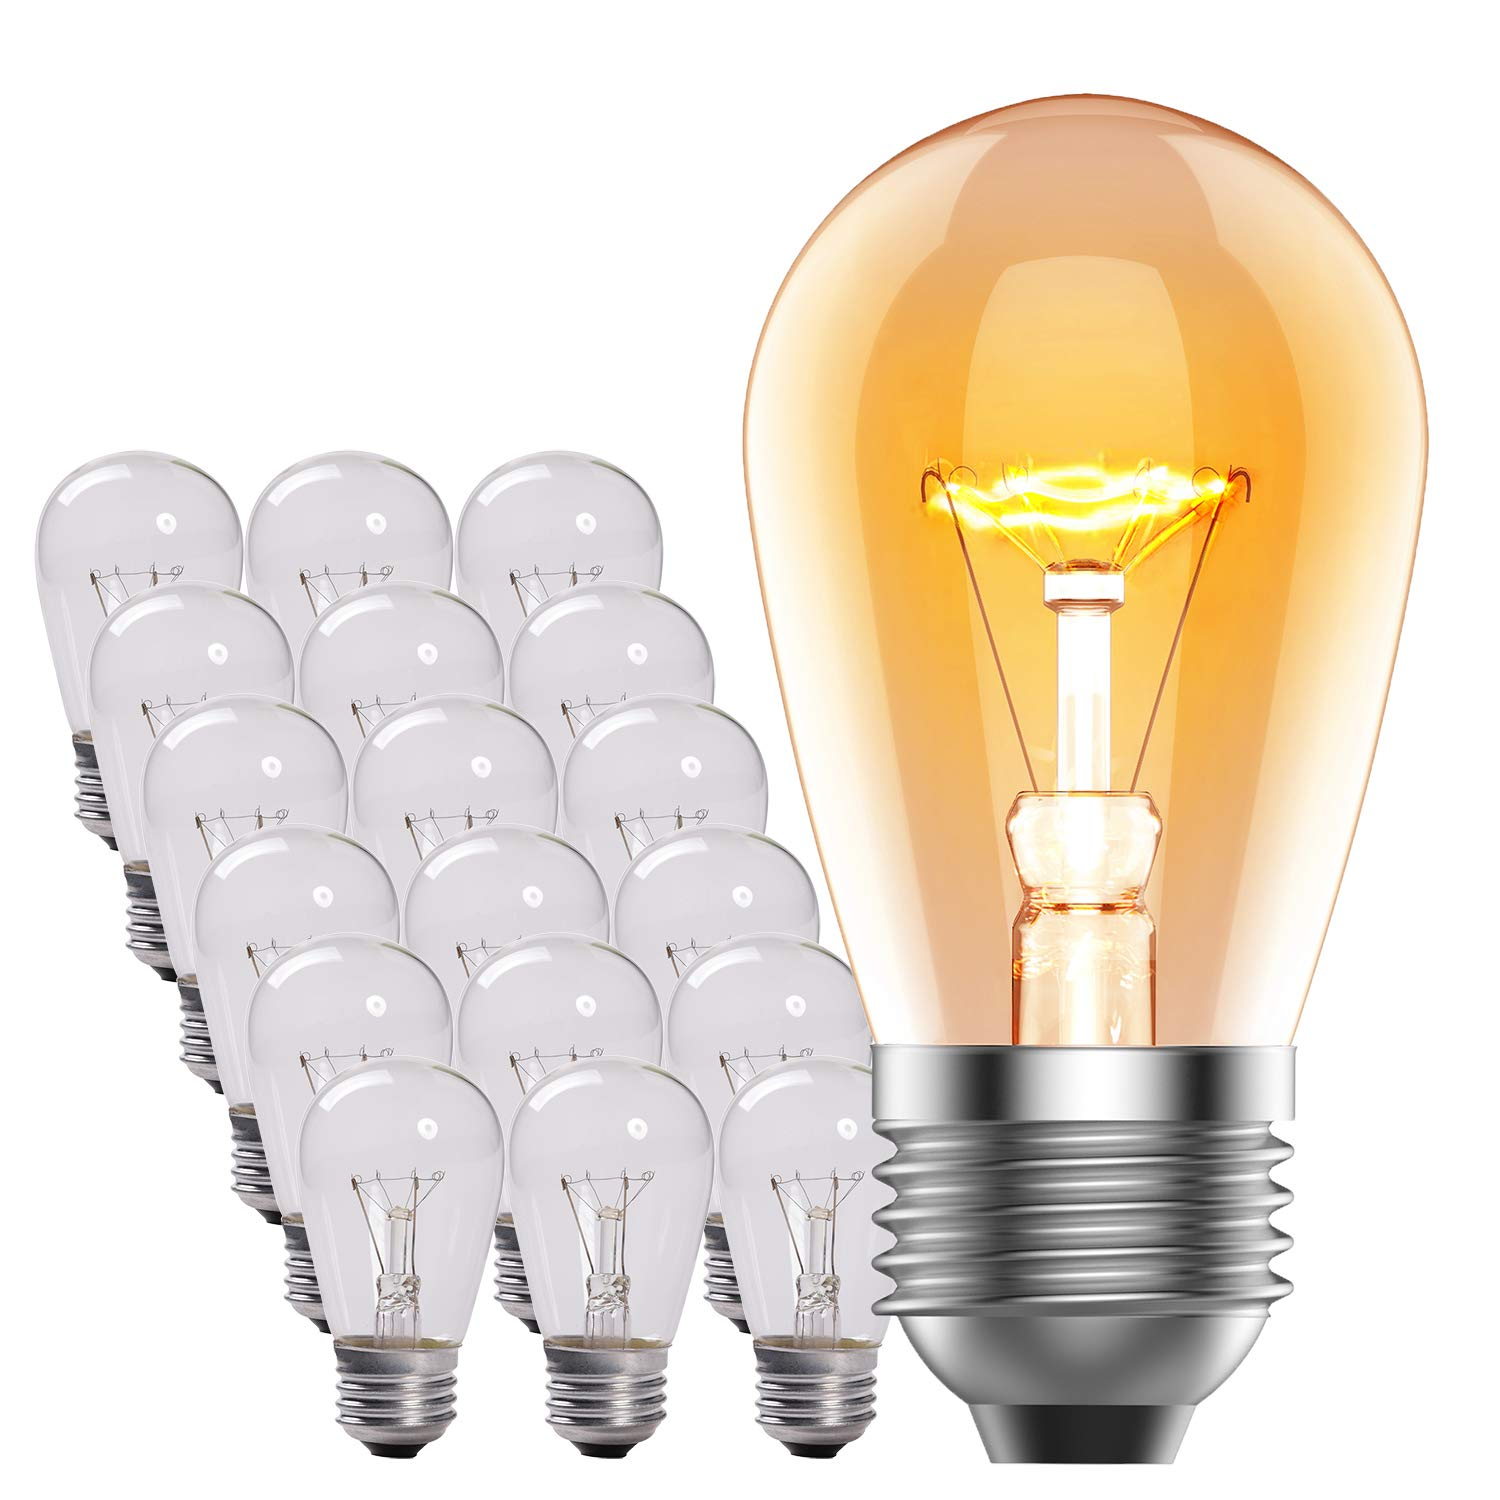 pack of 18 commercial grade 11-watt s14 replacement incandescent light bulbs  with e26 medium base, for indoor and outdoor use - especially for heavy  duty